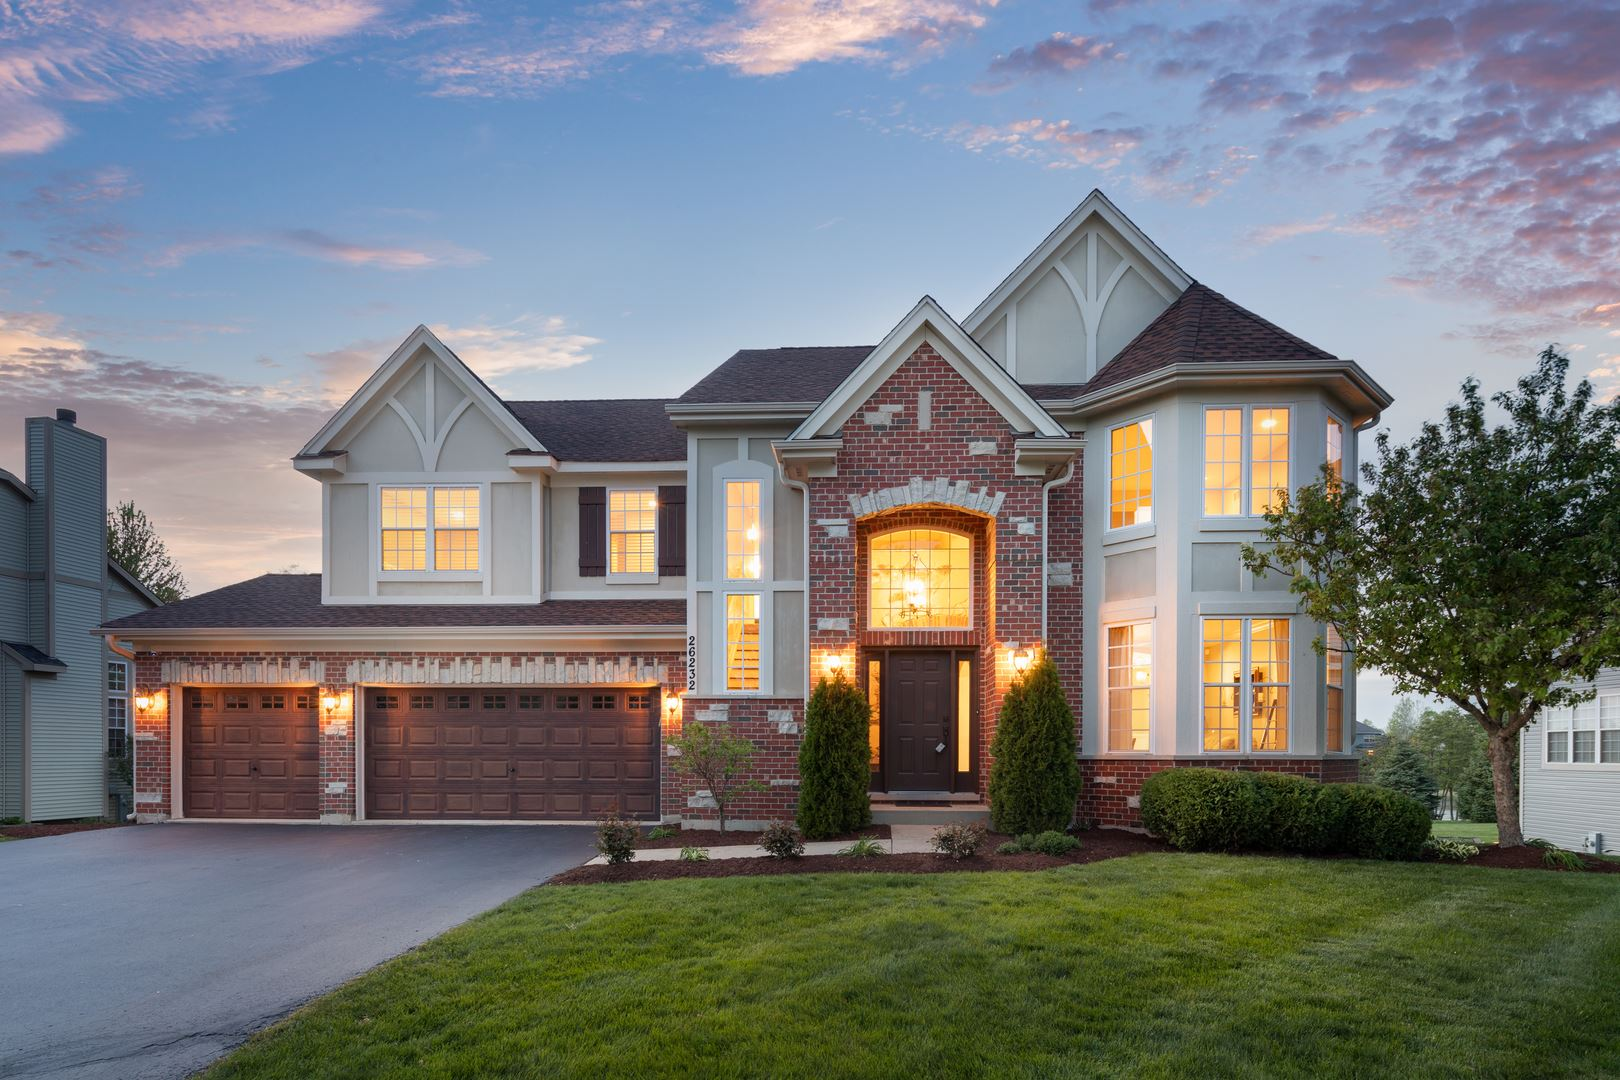 Photo of 26232 Whispering Woods Circle, Plainfield, IL 60585 (MLS # 11079684)